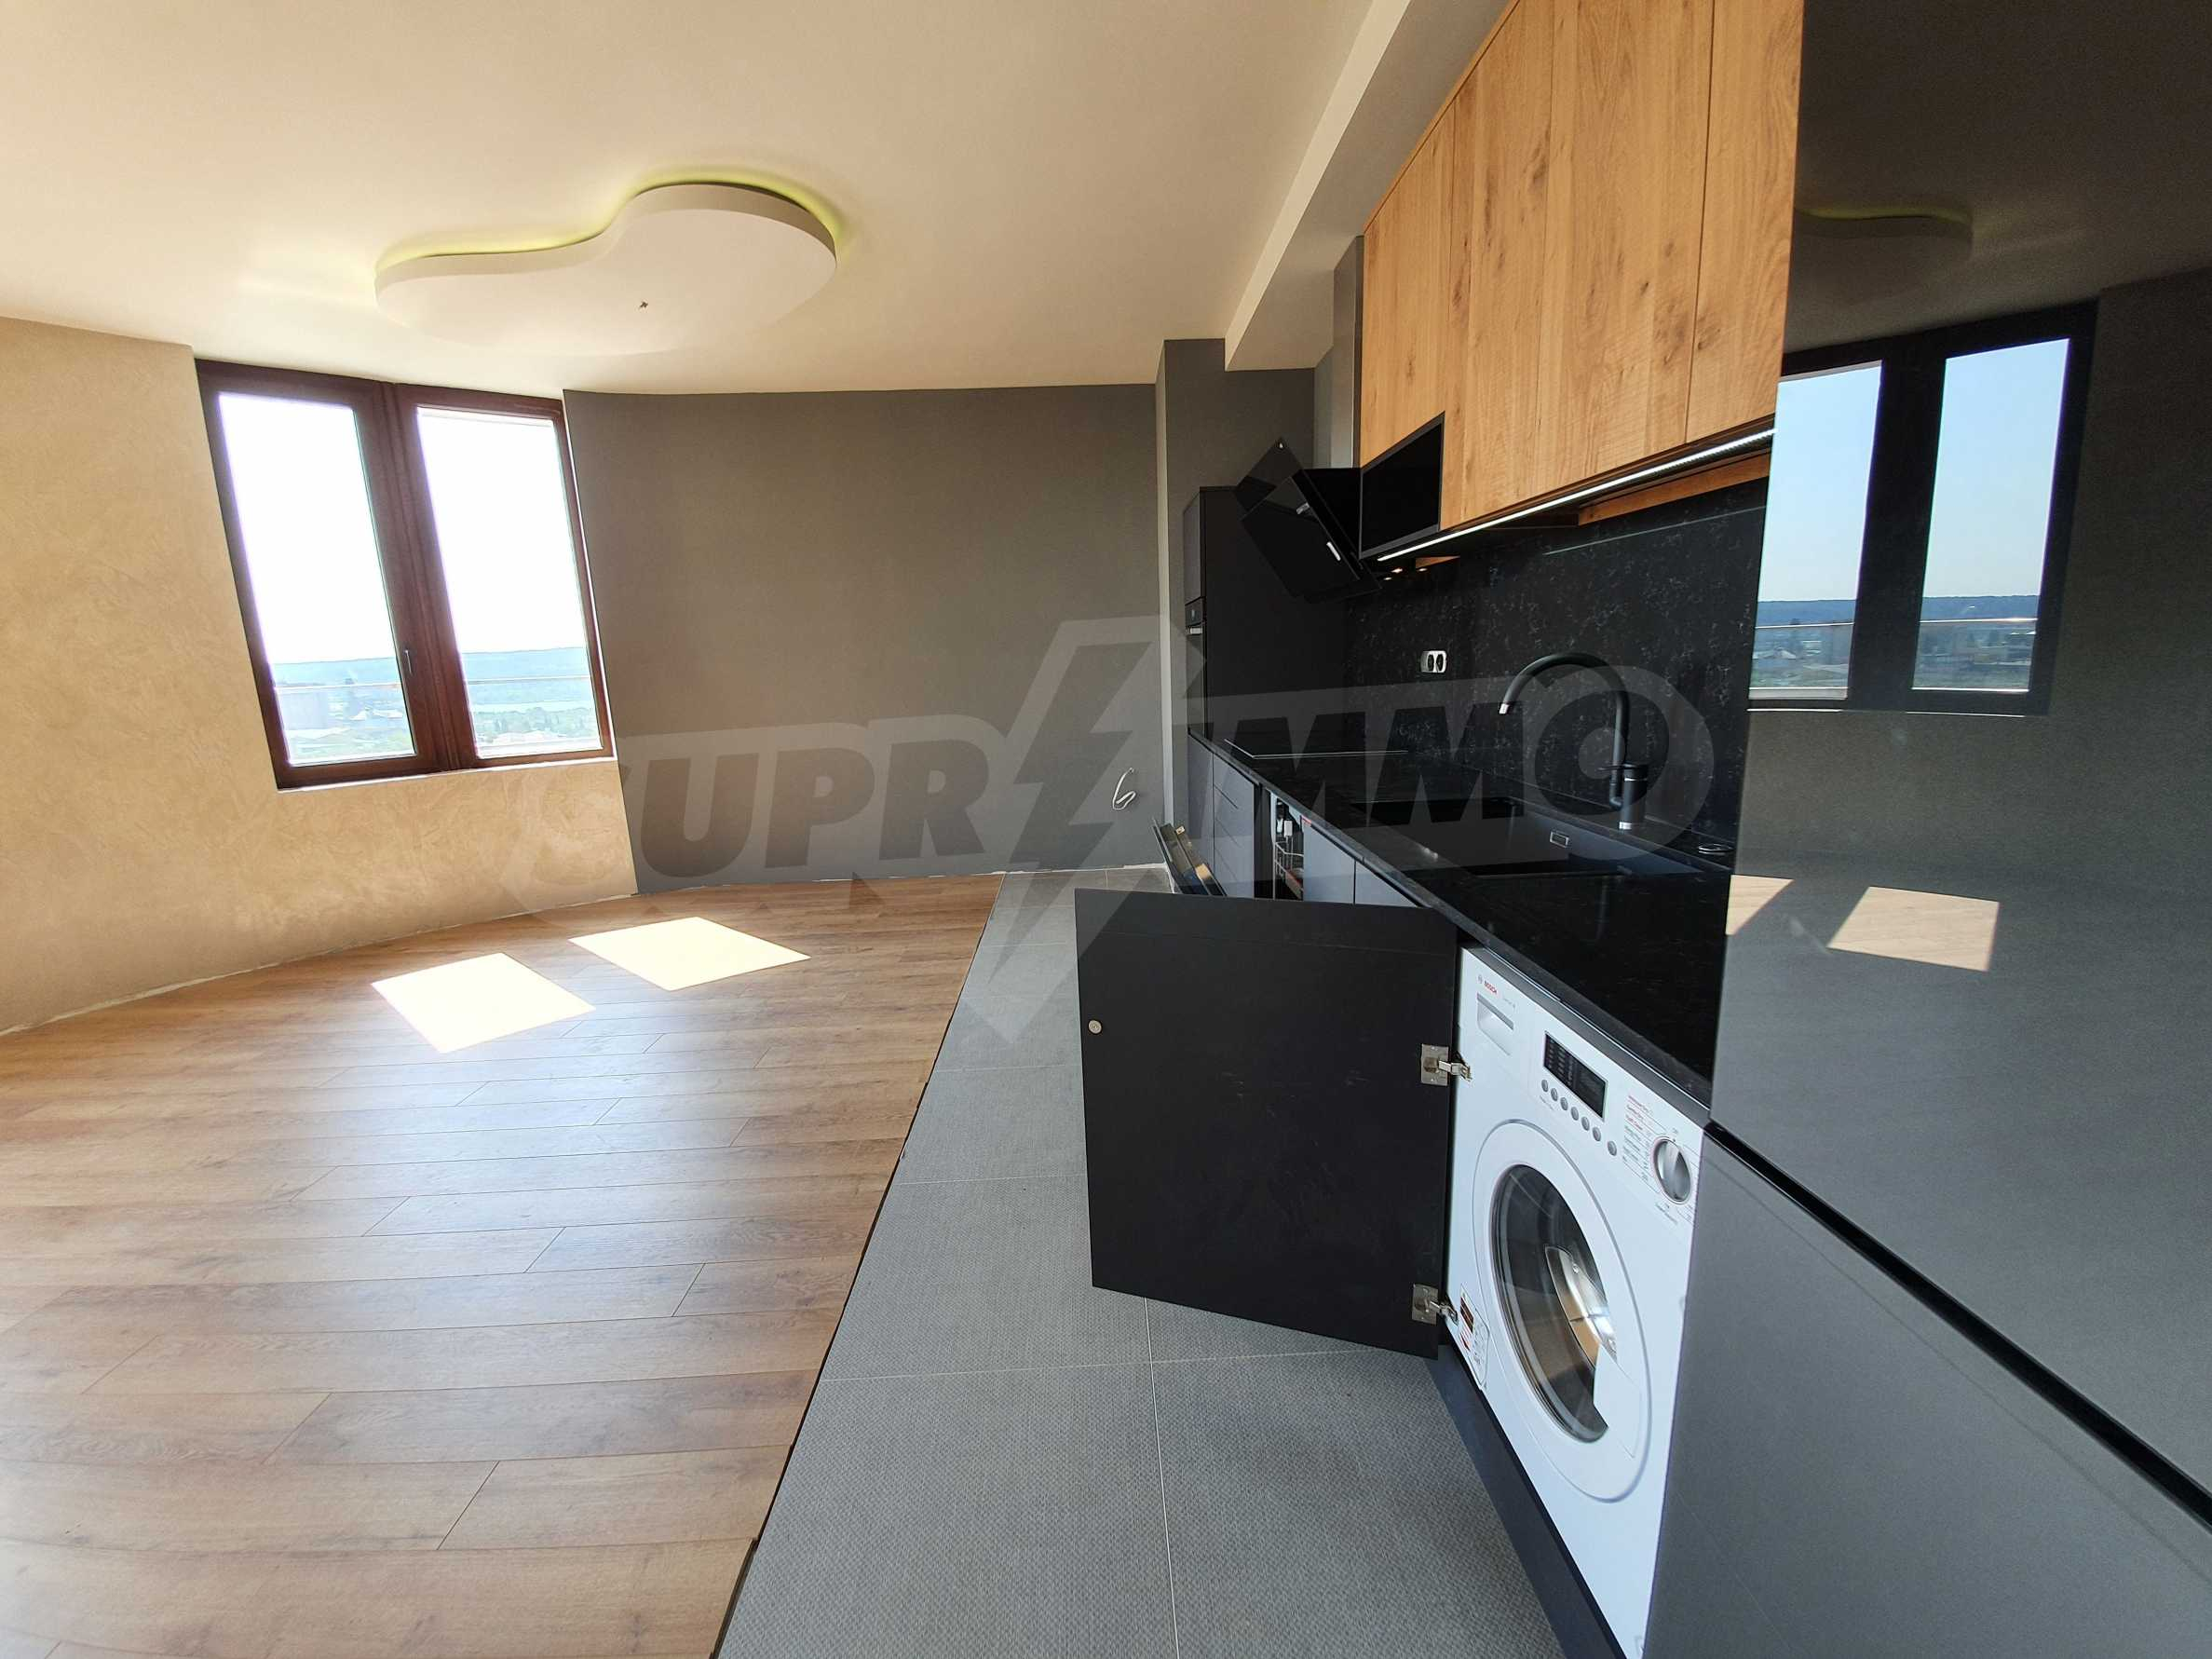 Panoramic two-bedroom apartment with views of the lake and Varna 11